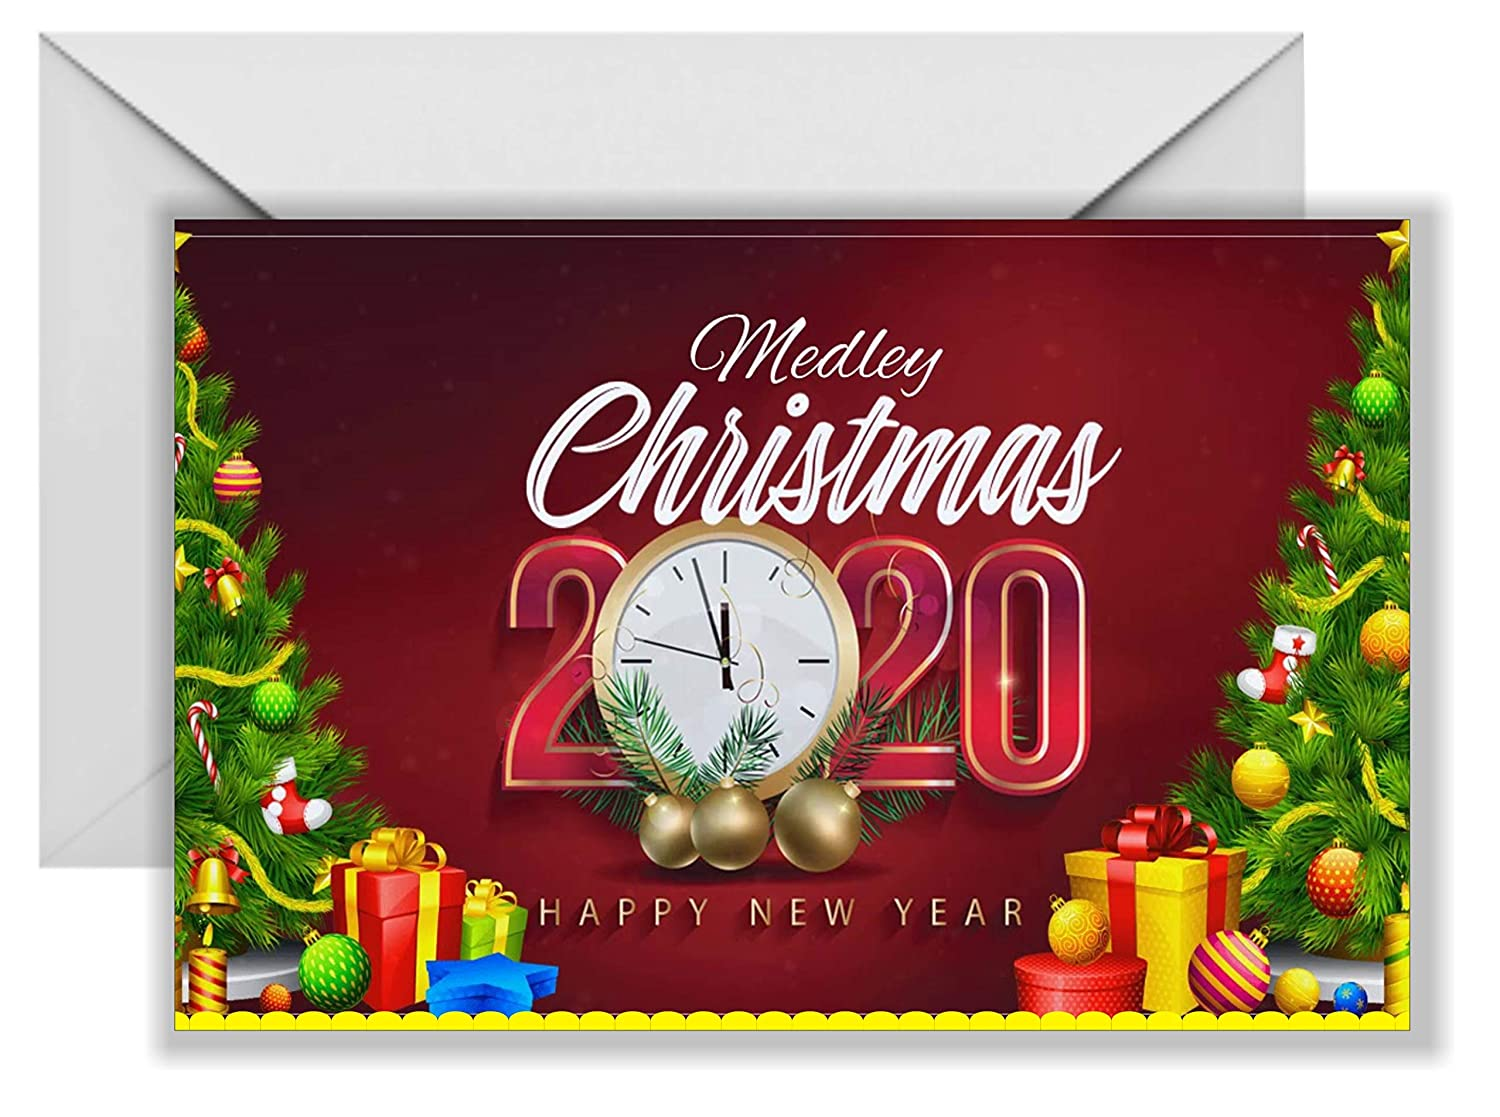 Merry Christmas Happy New Year 2020 Gift Card Happy Christmas Card Happy New Year 2020 Multicolour Card Festival Card Best Happy New Year Greeting Card Amazon In Home Kitchen